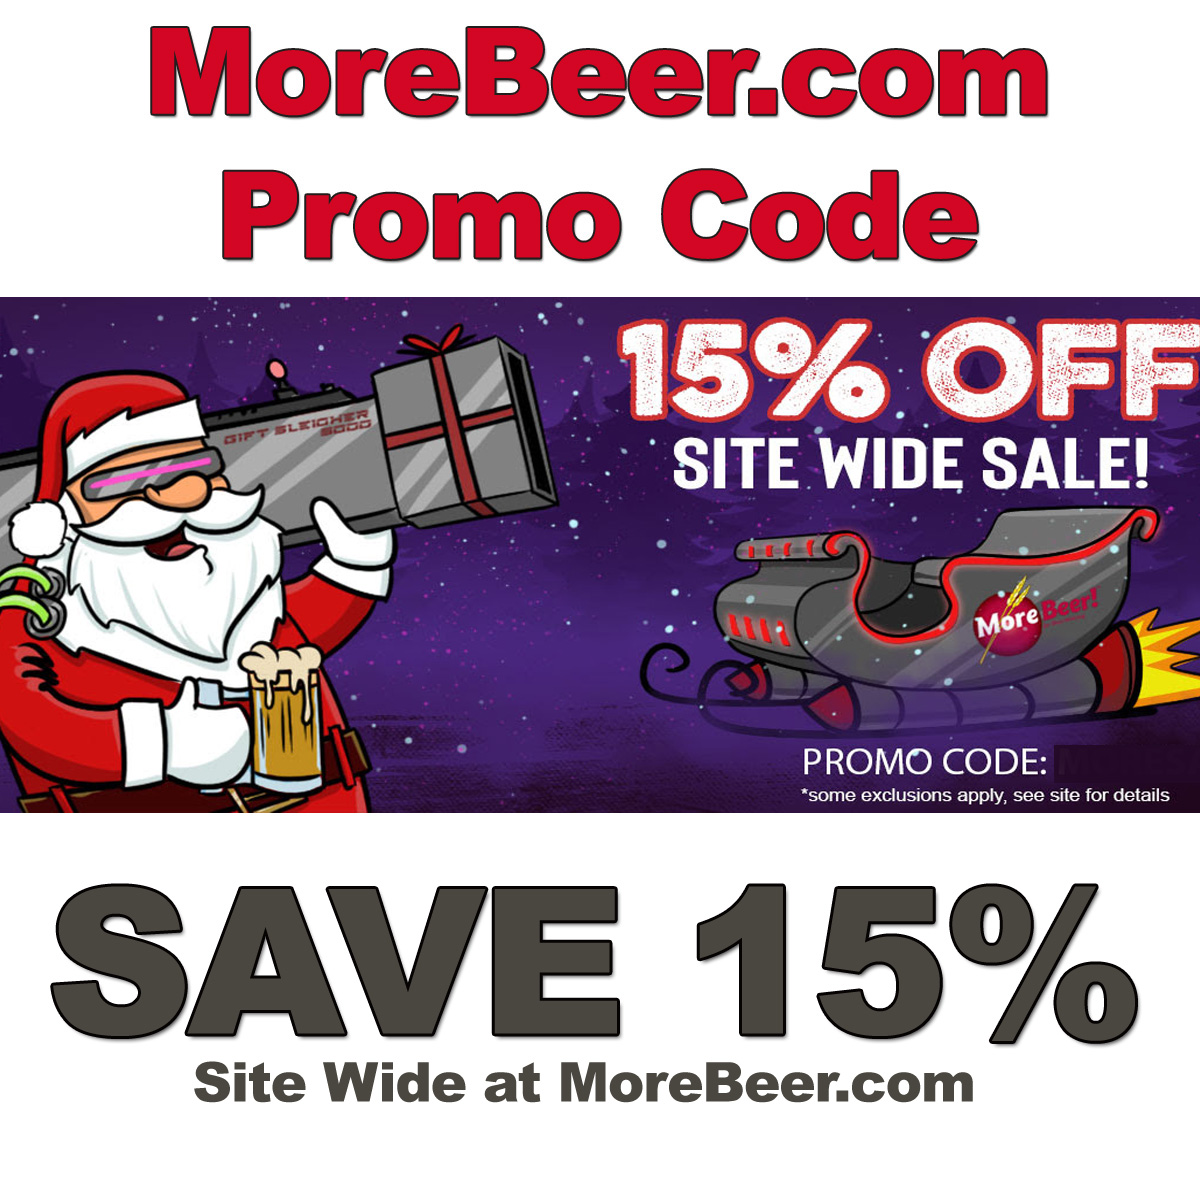 MoreBeer.com Coupon Code for 15% Off Site Wide